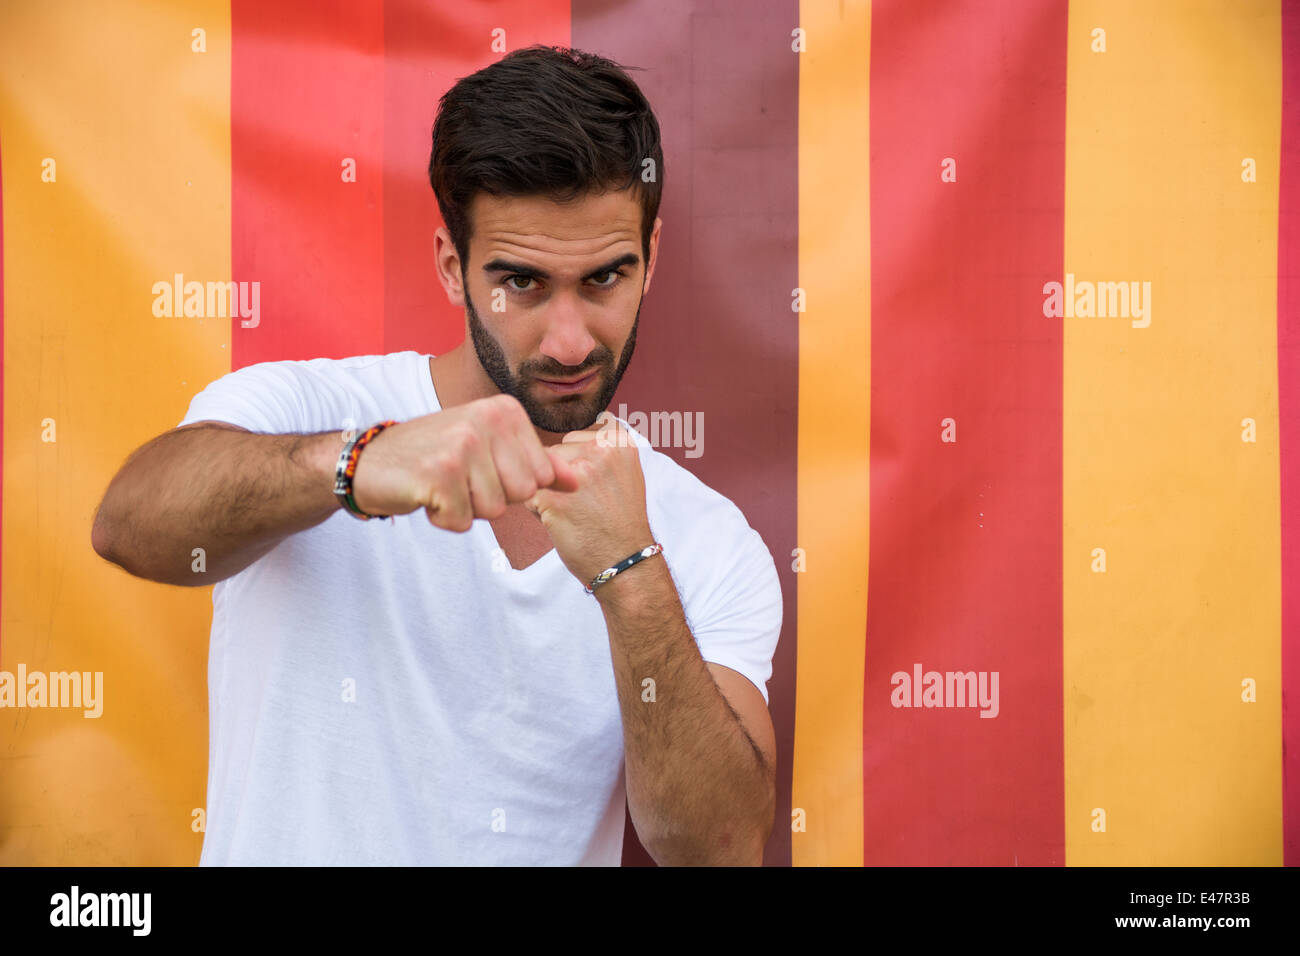 Angry handsome young man throwing punch to camera on colorful background - Stock Image